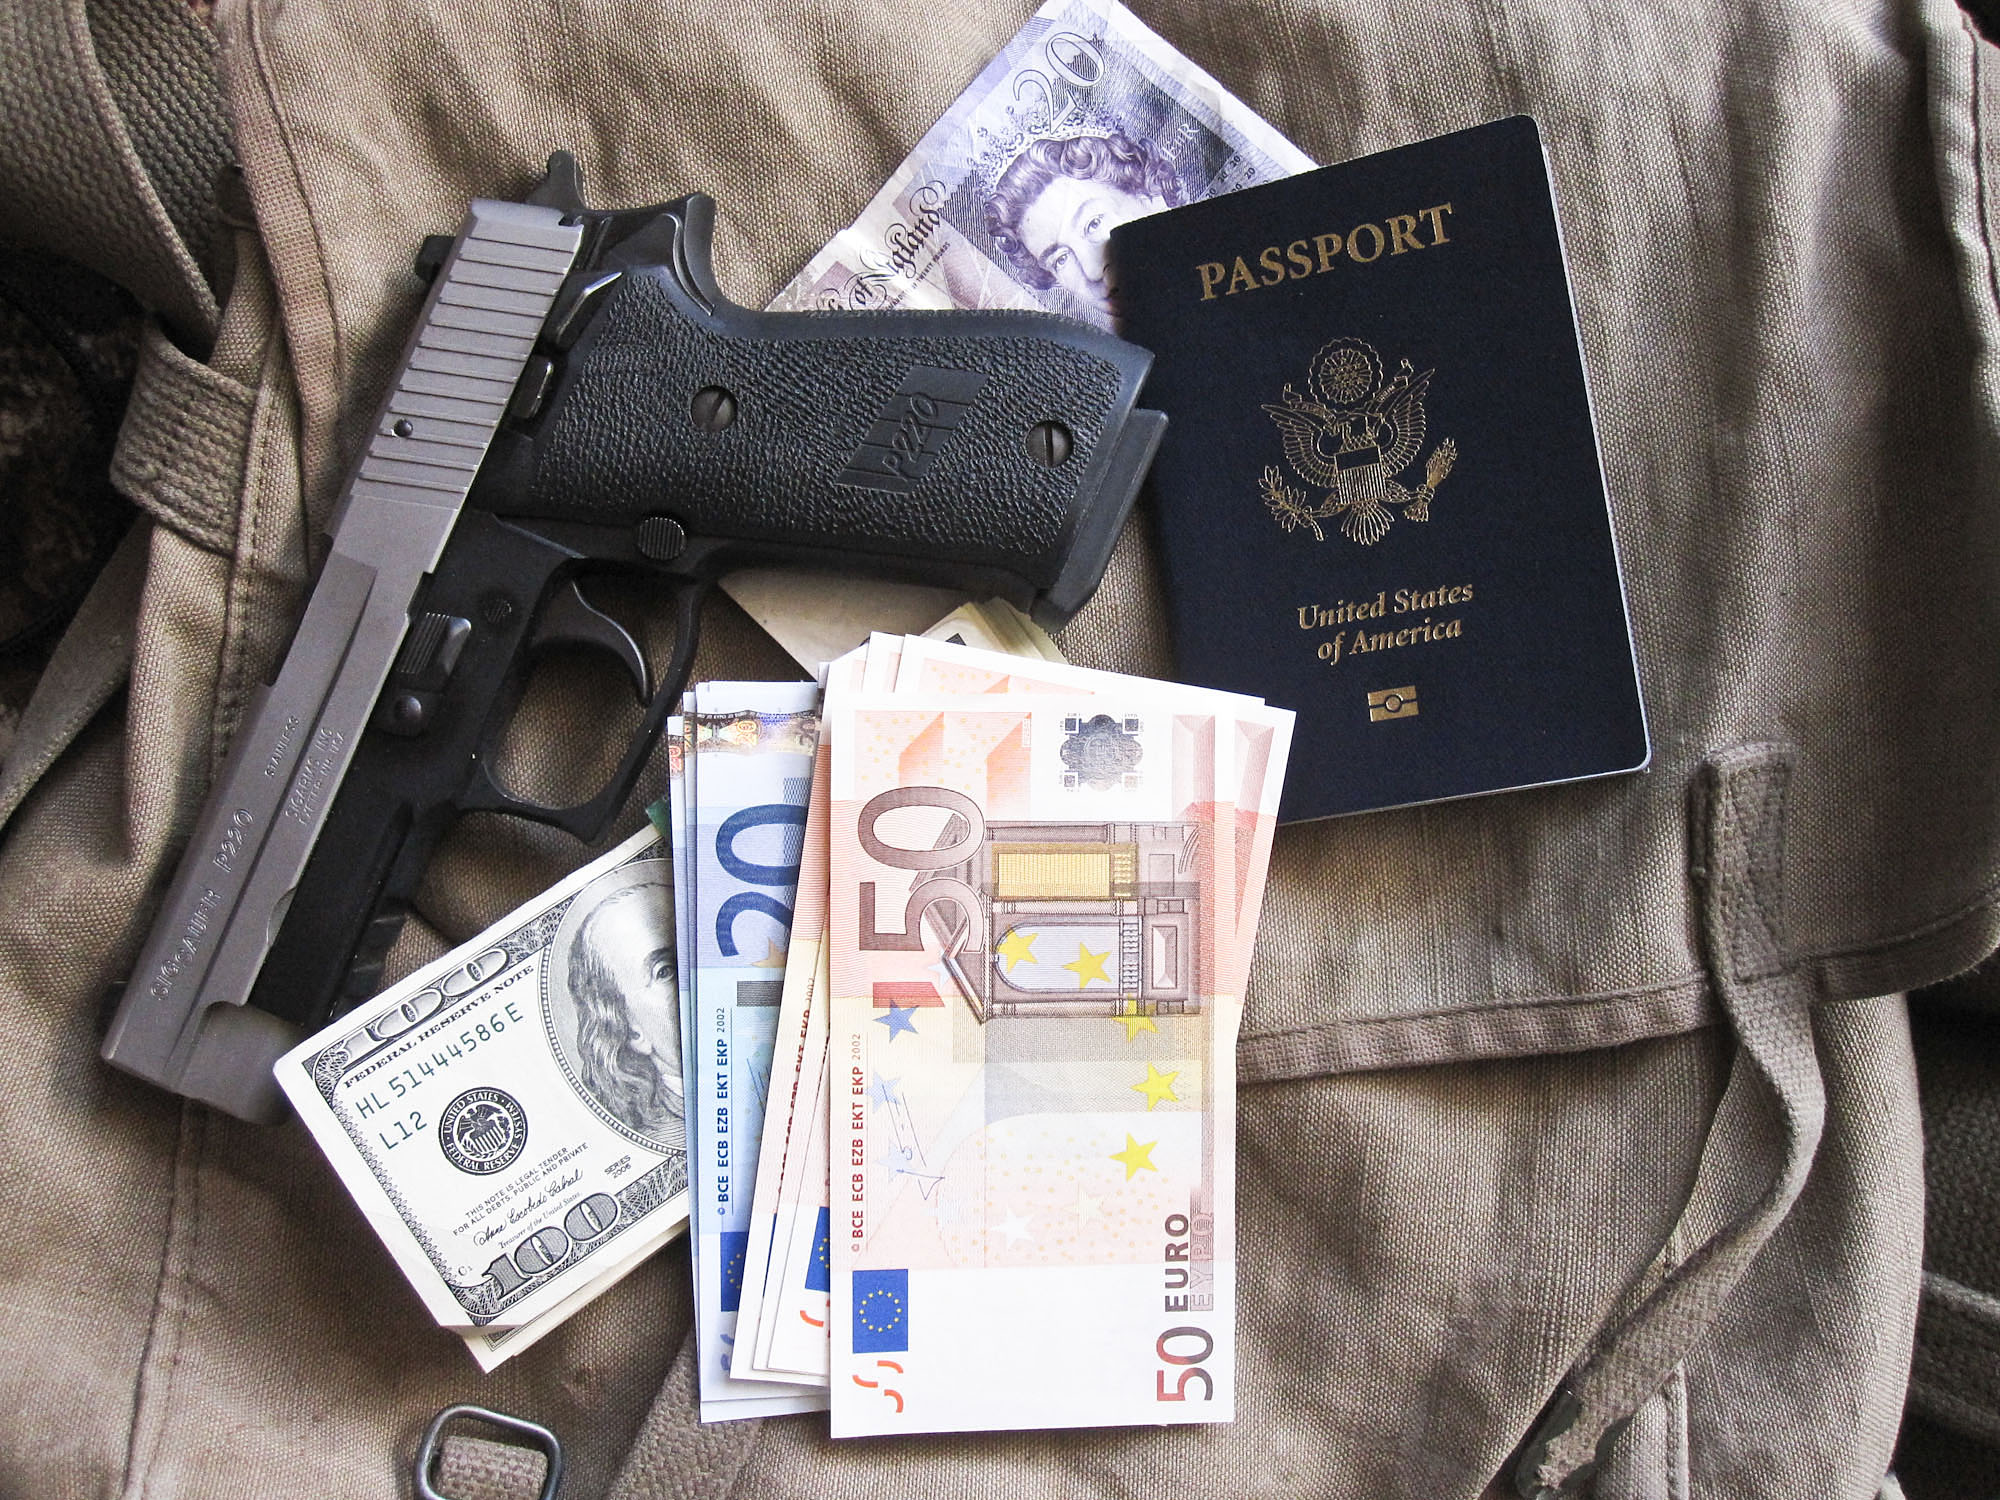 Picture shows a gun, a United States passport and foreign currency.